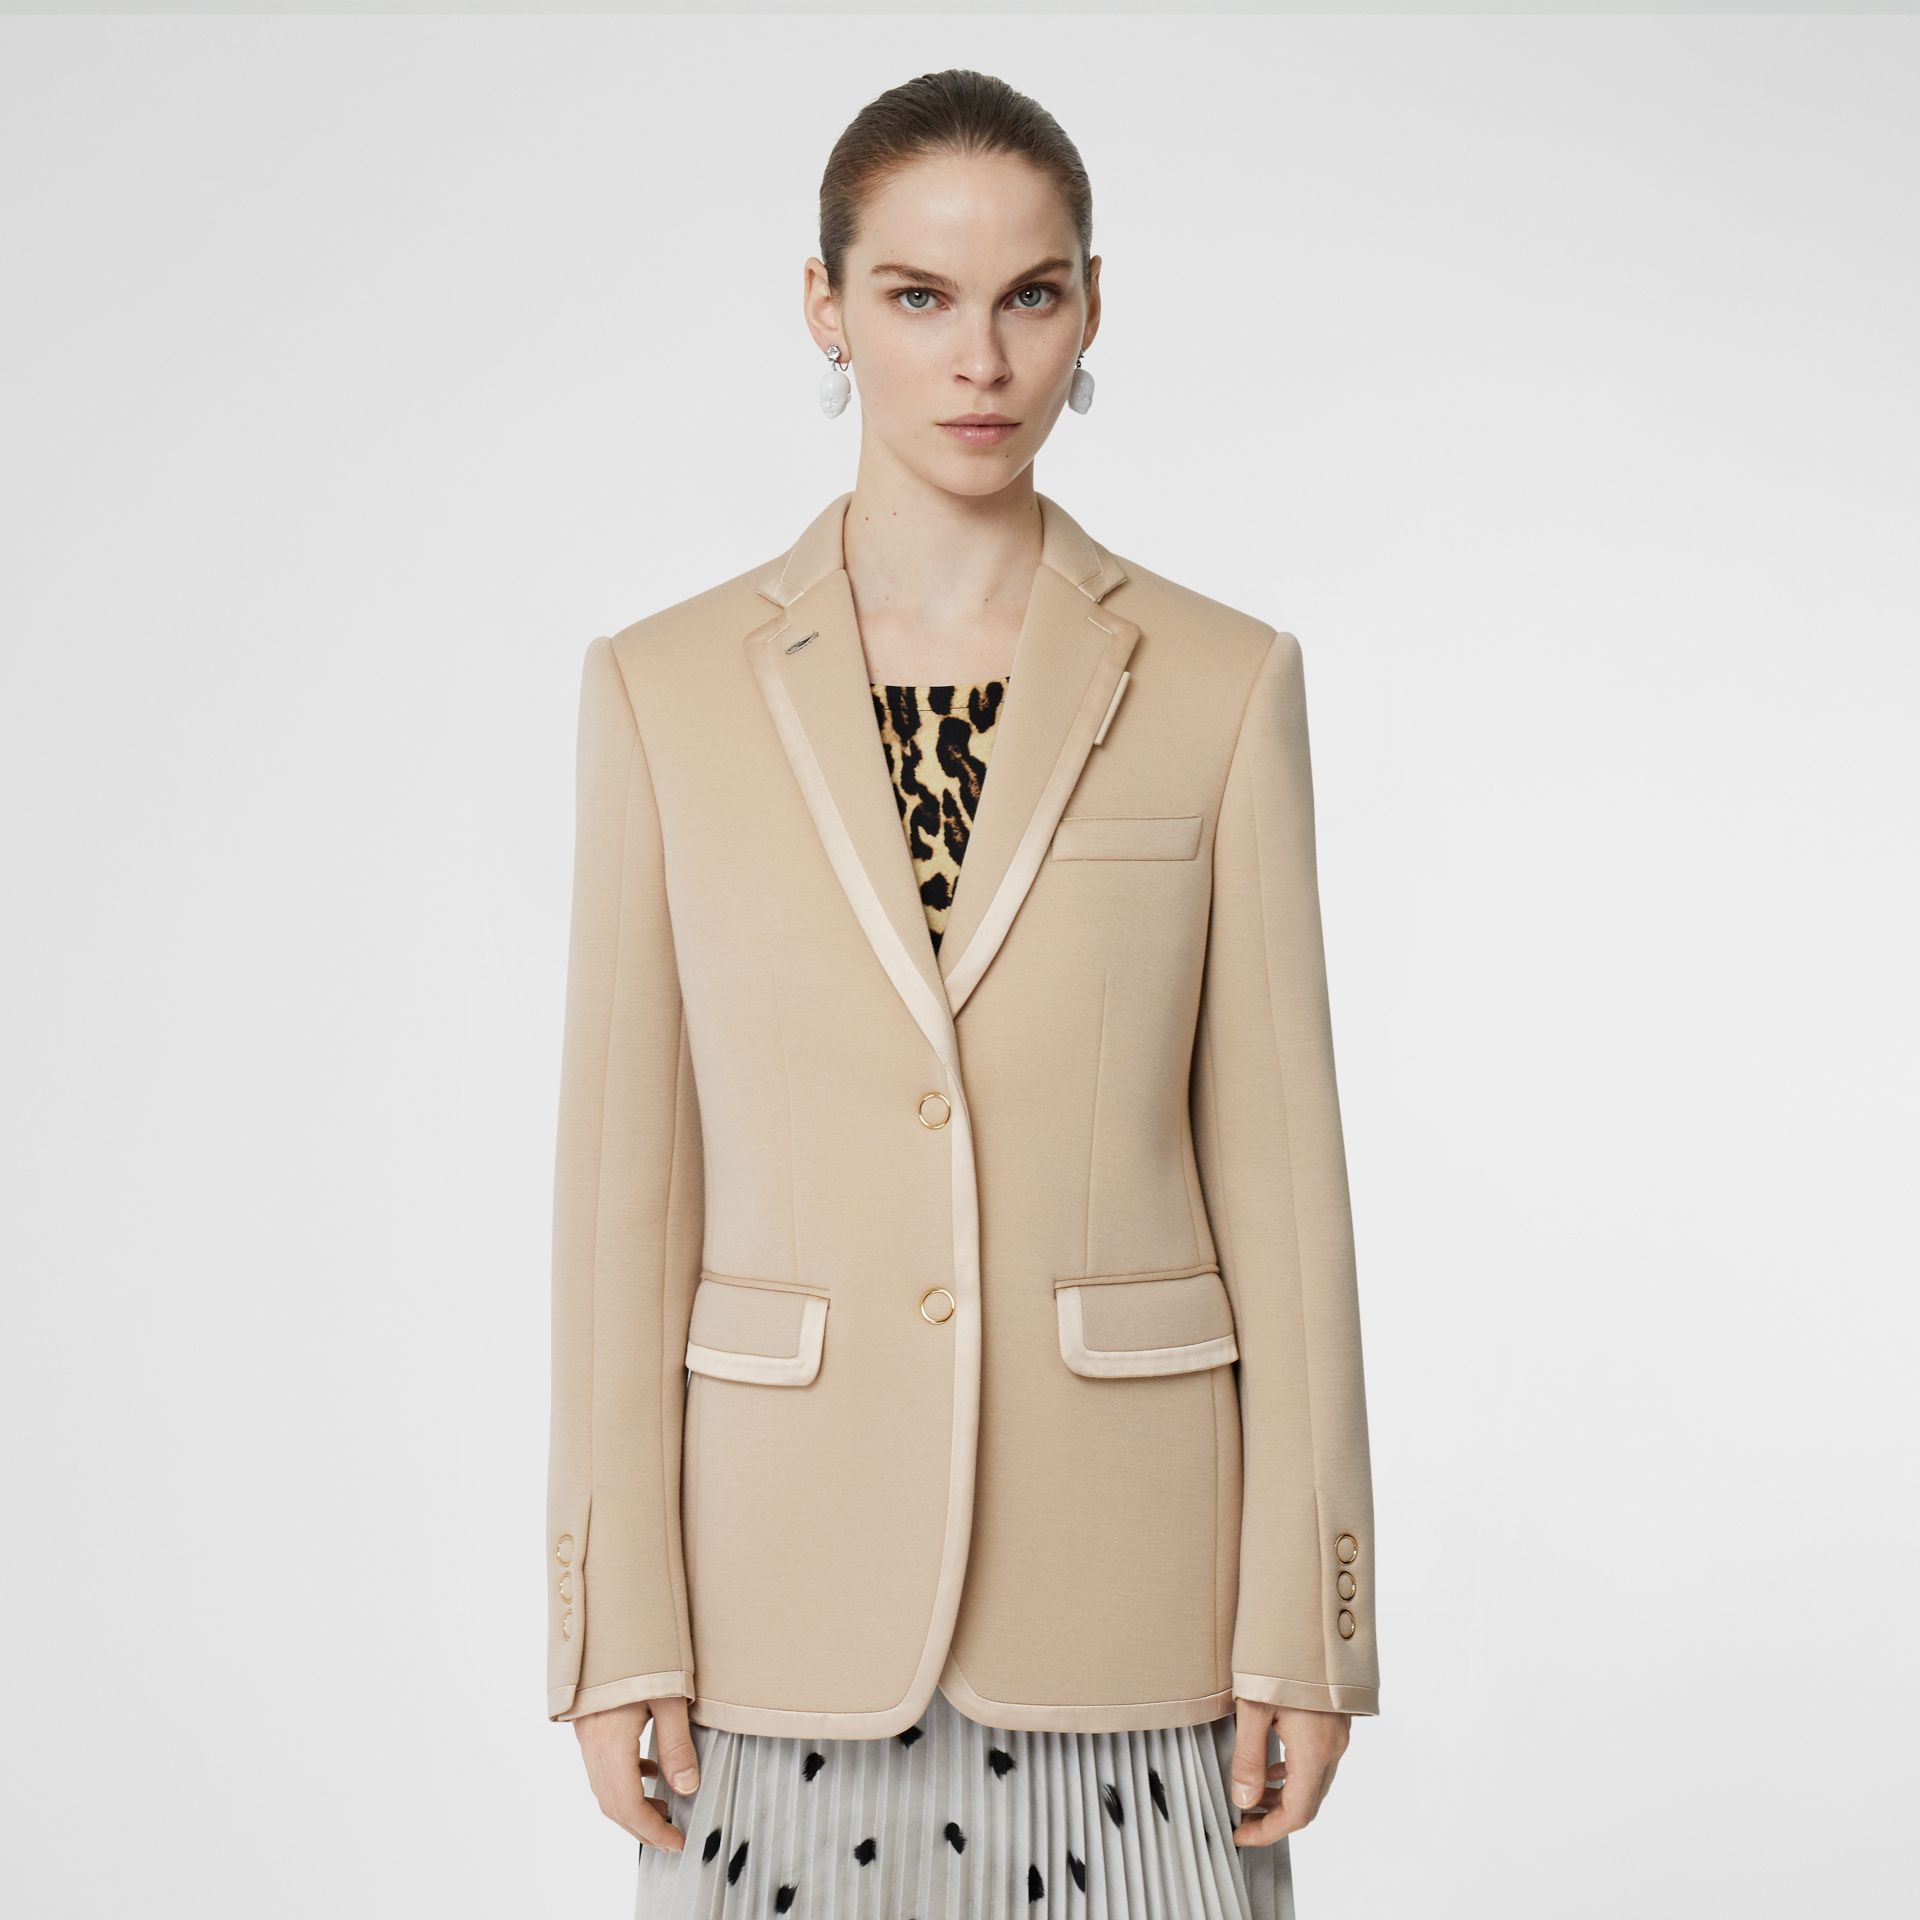 Silk Trim Neoprene Blazer in Teddy Beige - Women | Burberry Hong Kong - gallery image 5